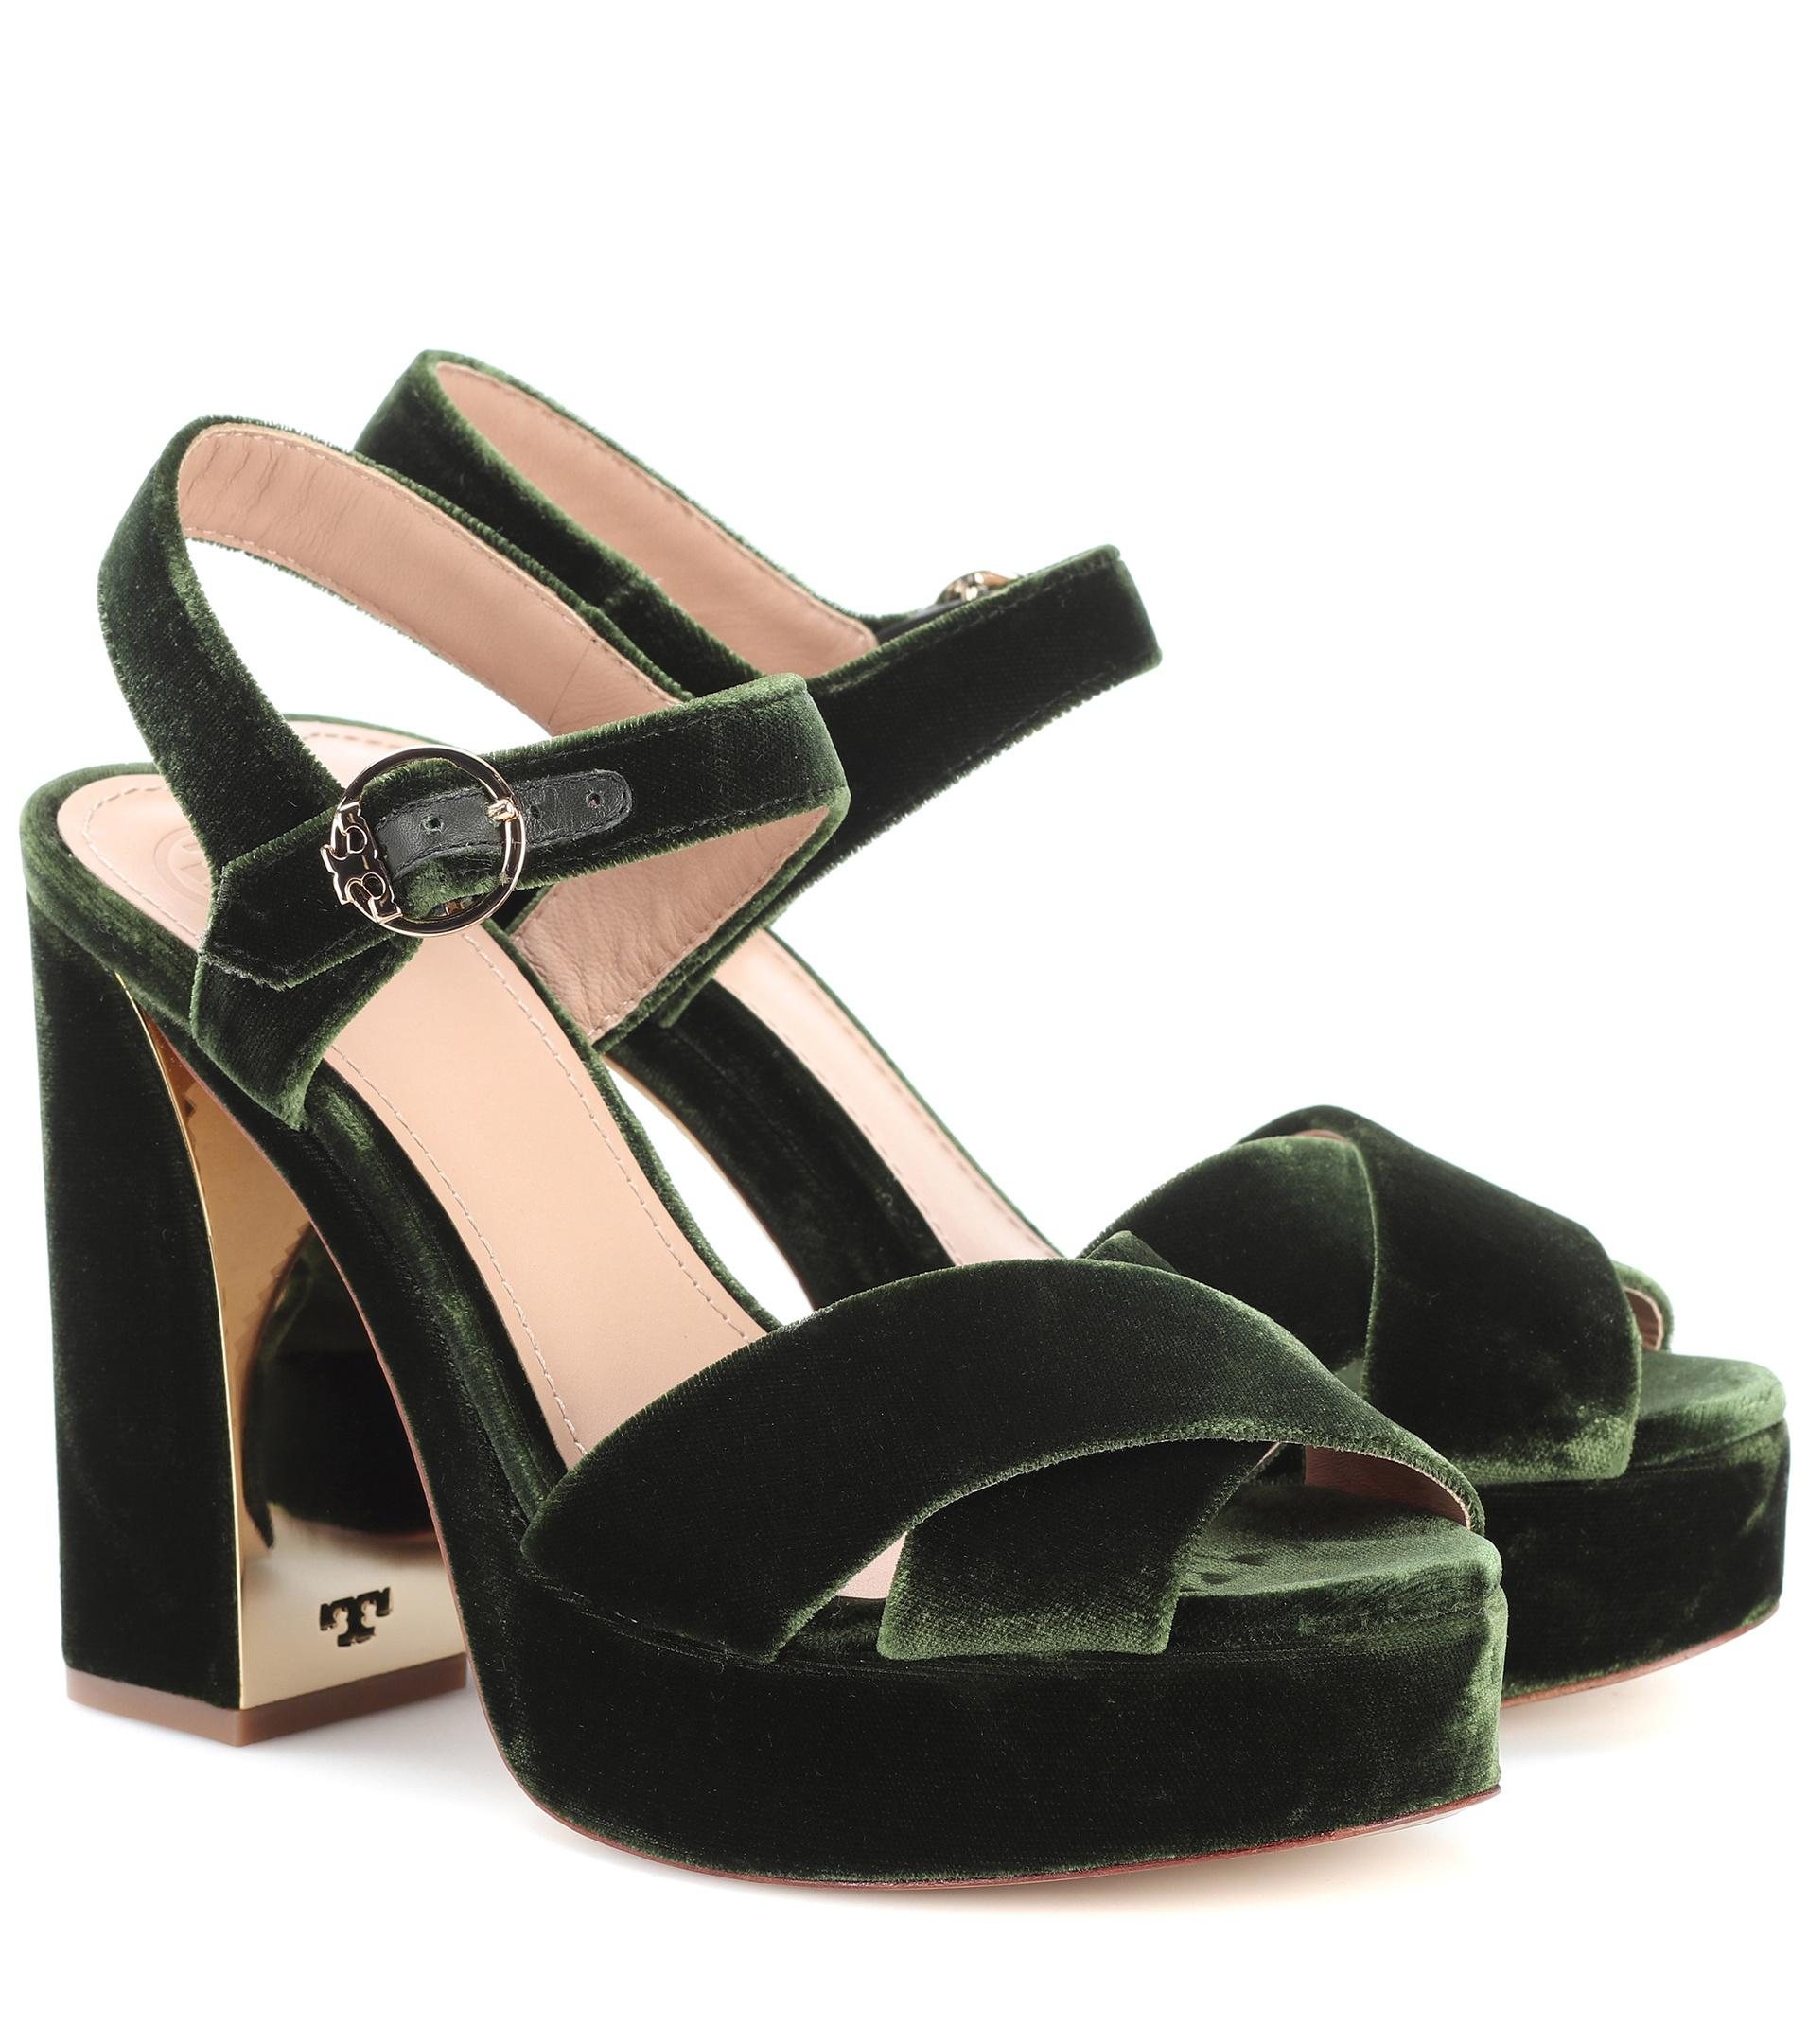 Tory Burch. Women's Green Loretta 115 Velvet Plateau Sandals